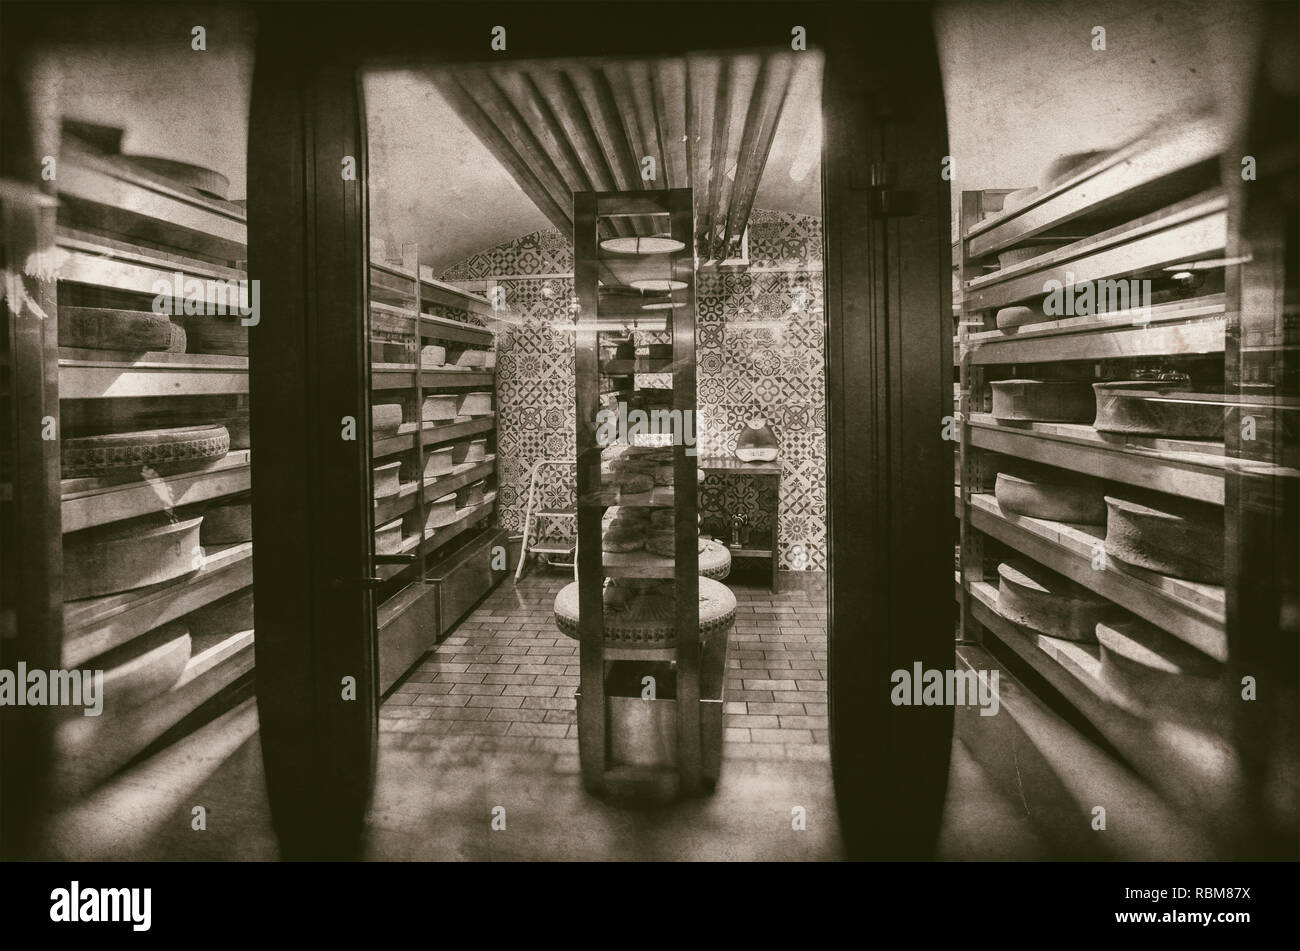 Large wheels of cheese maturing in storehouse dairy cellar - retro photography - Stock Image